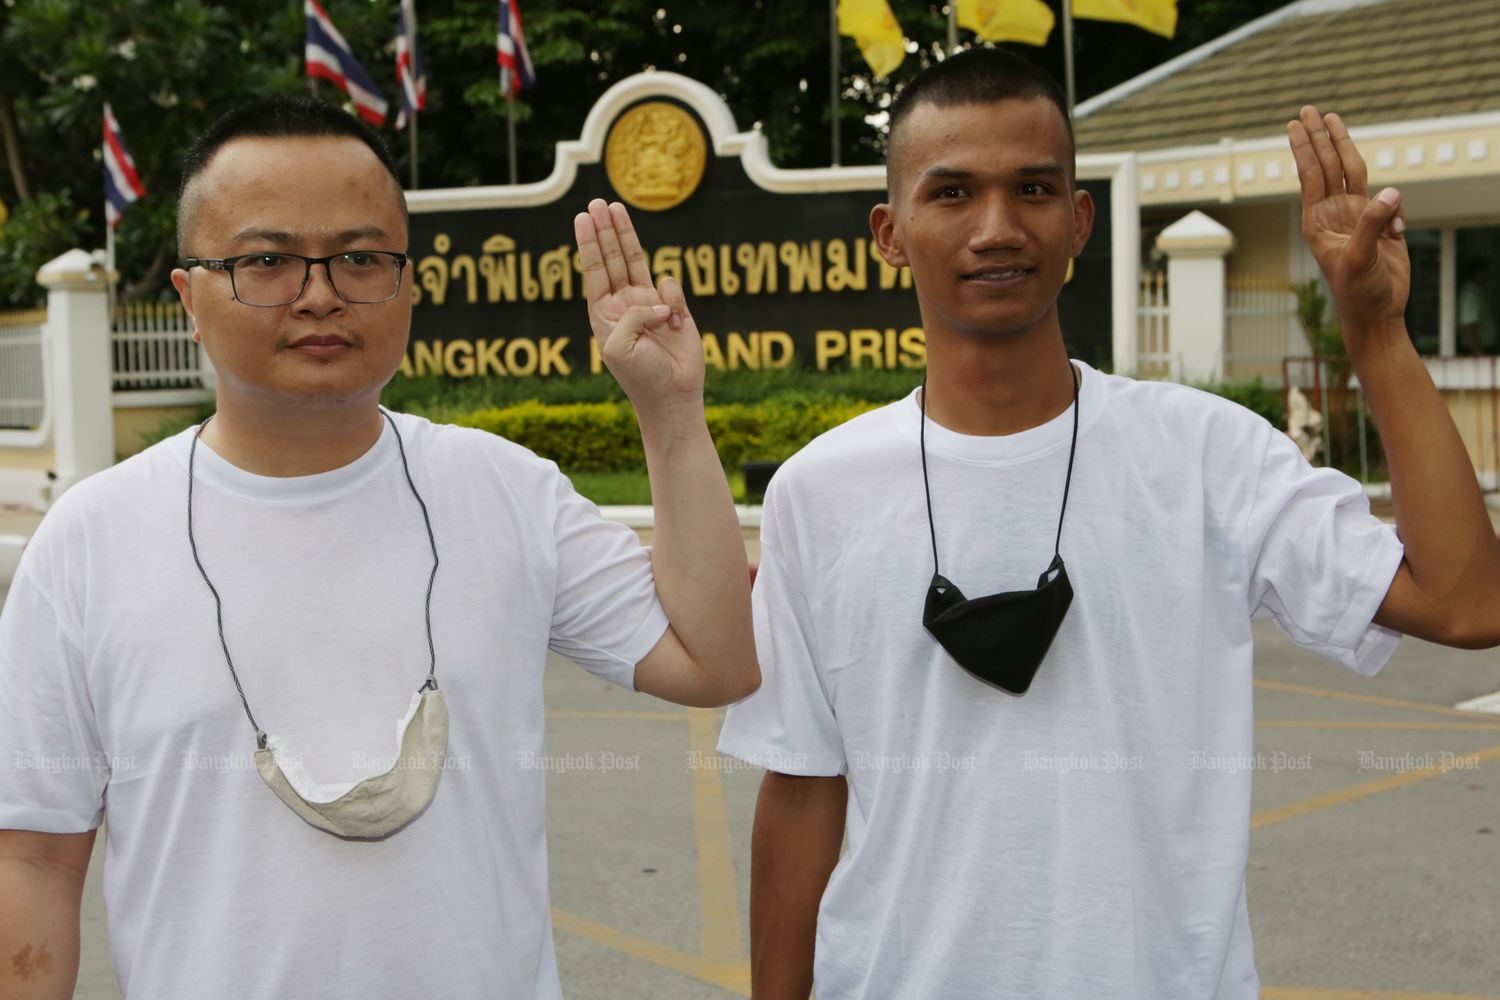 Lawyer Anon Nampa (left) and student activist Panupong 'Mike' Jadnok shows a symbol of their pro-democracy protest after being released from Bangkok REmand Prison in Bangkok on Monday evening. (Photo by Apichit Jinakul)